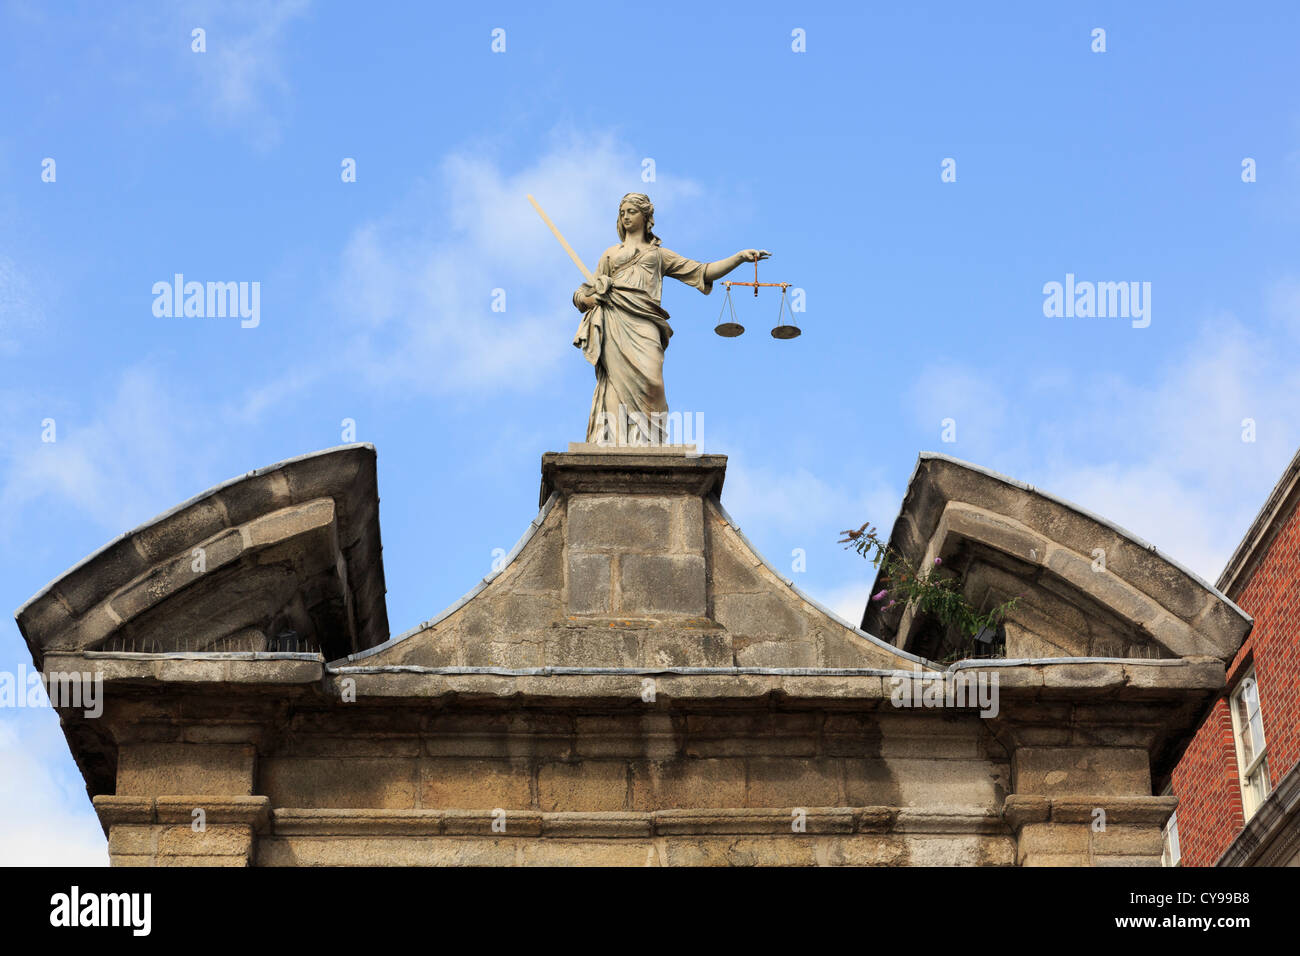 Statue of Lady Justice holding scales above an entrance gate in Dublin castle. Dublin, Republic of Ireland, Eire. - Stock Image